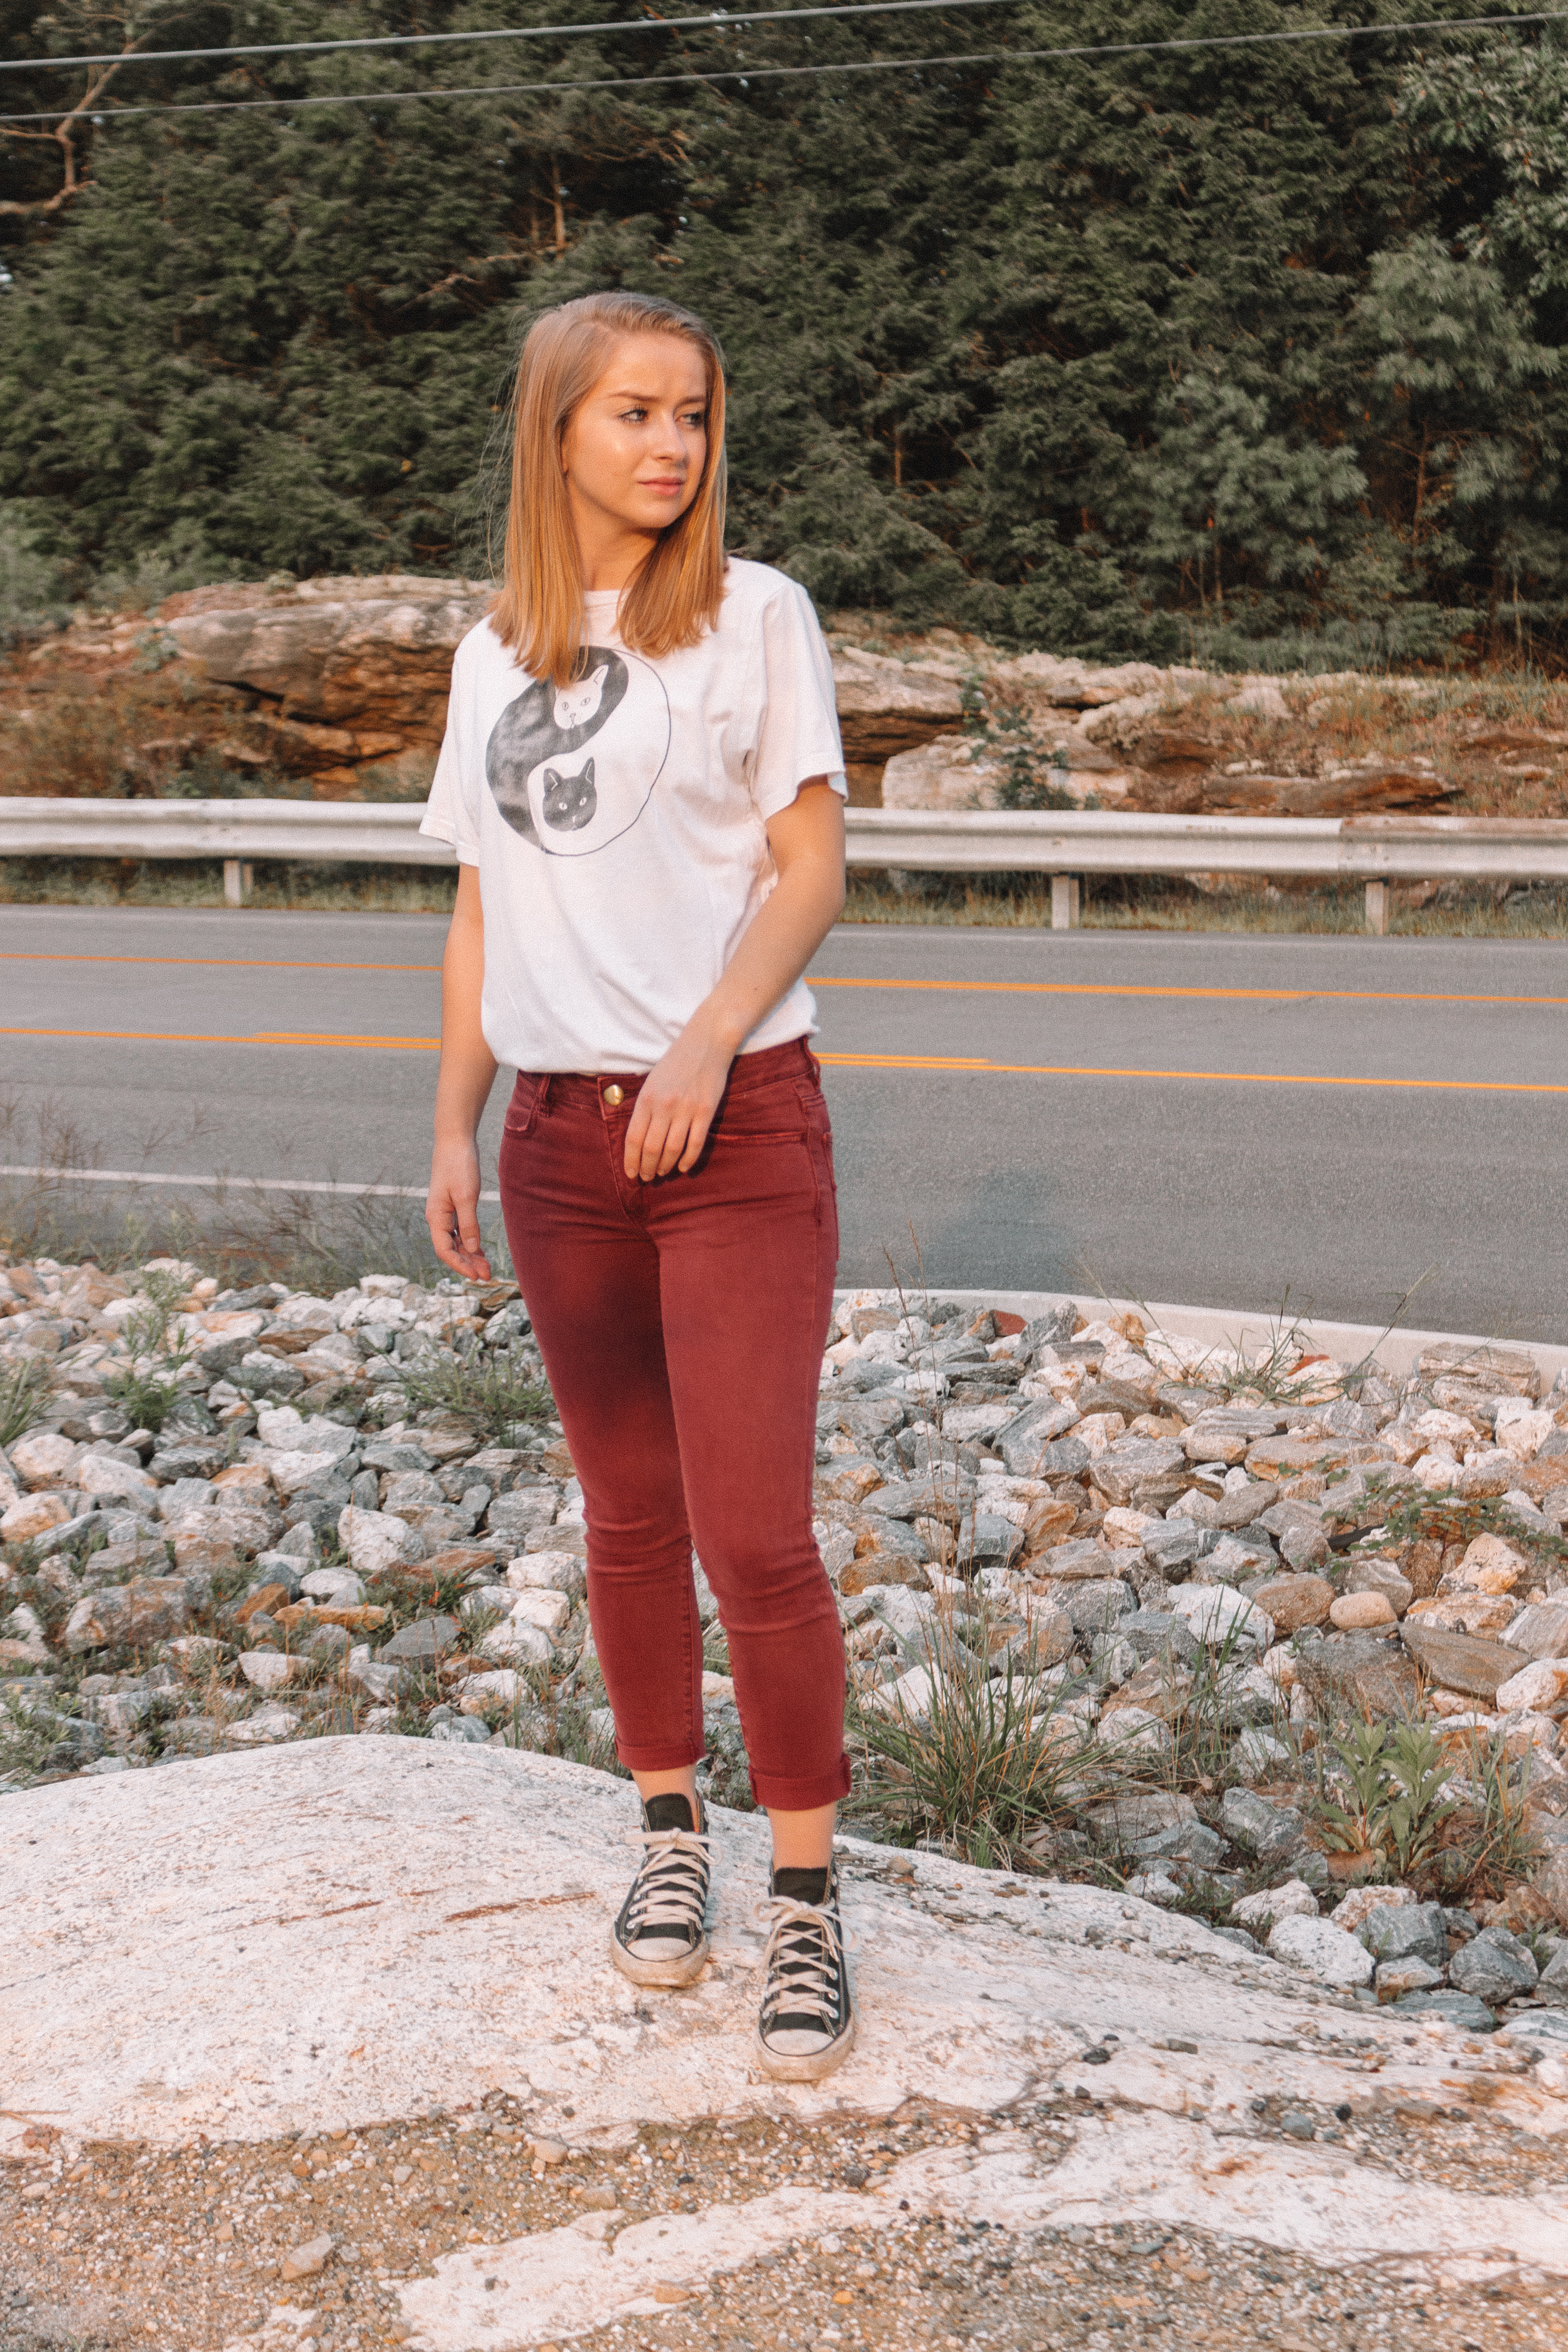 Graphic Tees: How to Style and Where to Buy | Hey Its Camille Grey #fashion #graphictees